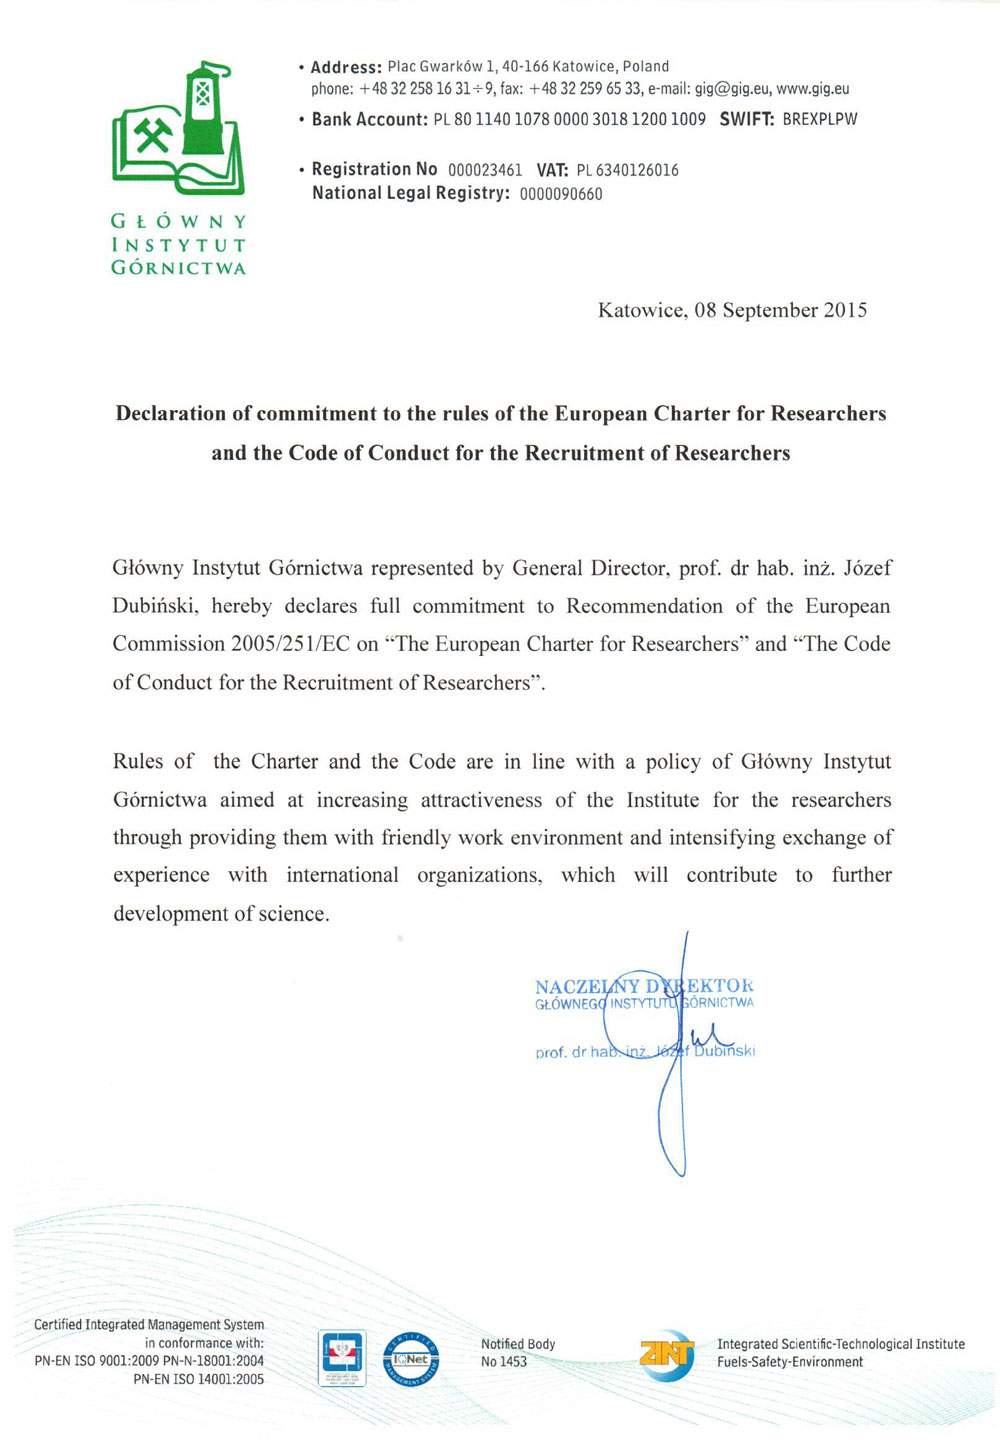 Declaration of commitment to the rules of the European Charter for Researchers and the Code of Conduct for the Recruitment of Researchers